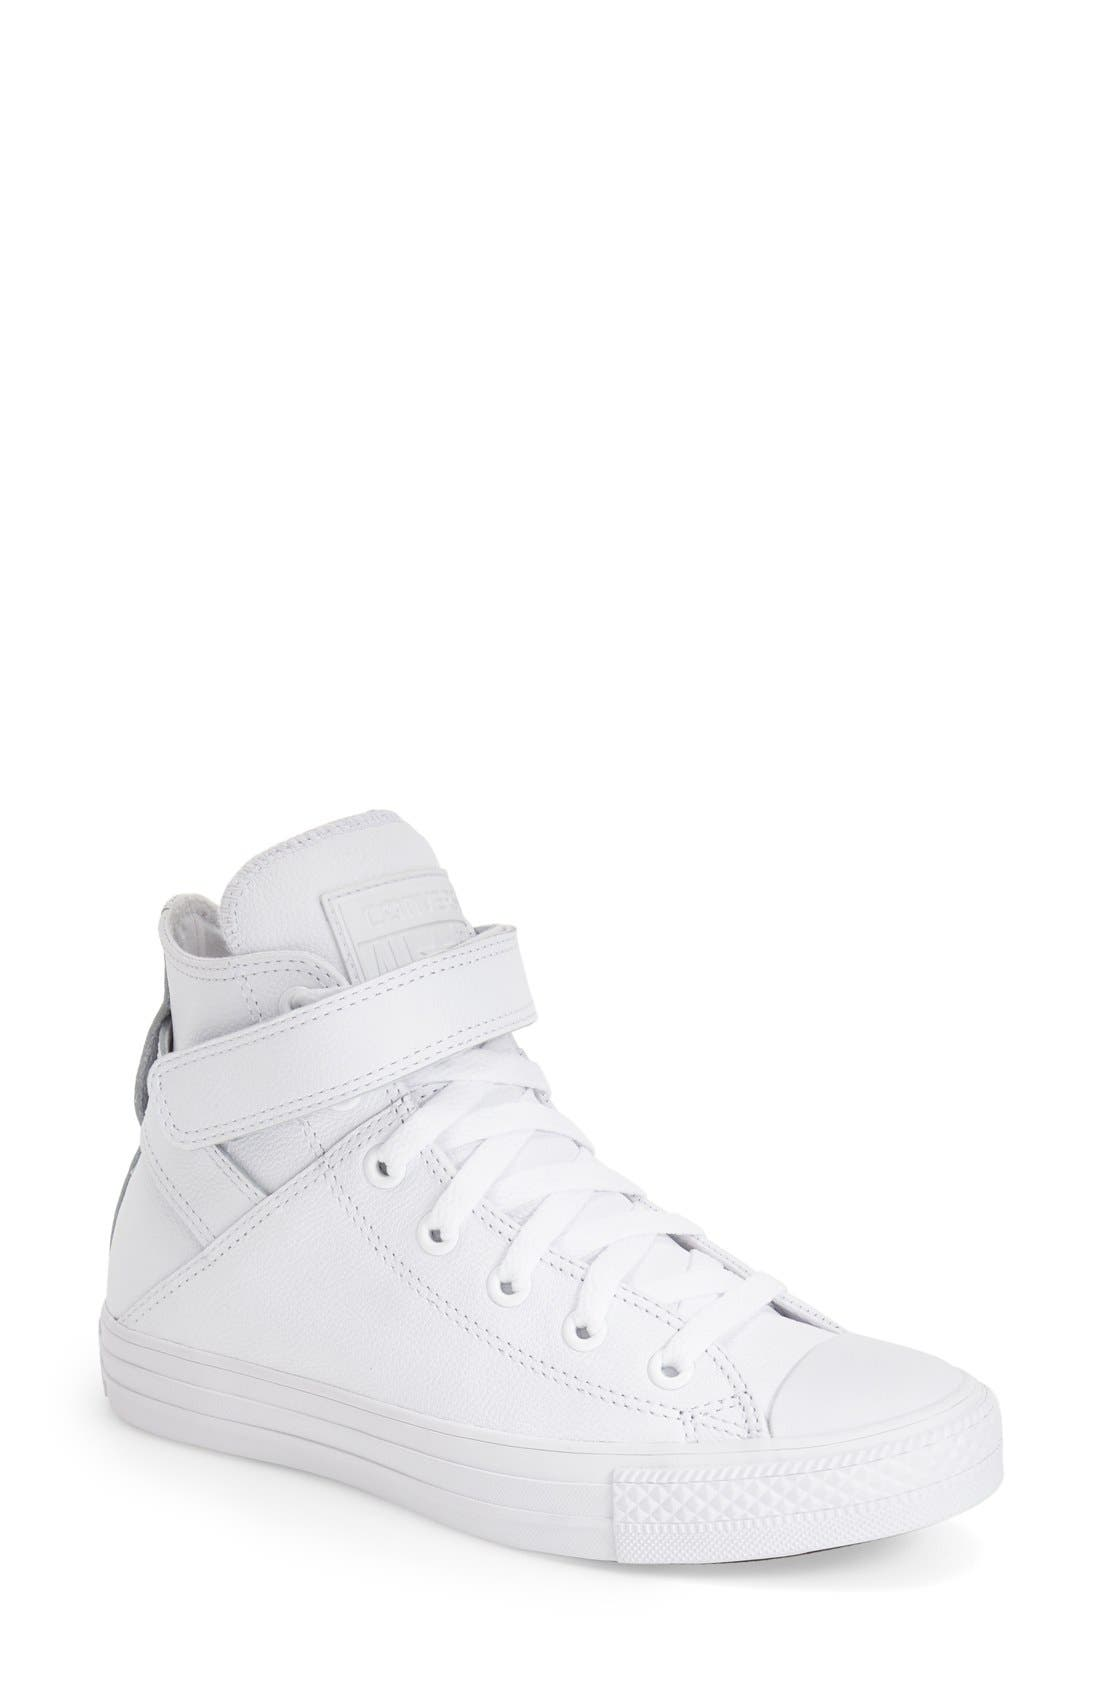 Main Image - Converse Chuck Taylor® All Star® 'Brea' Leather High Top Sneaker (Women)